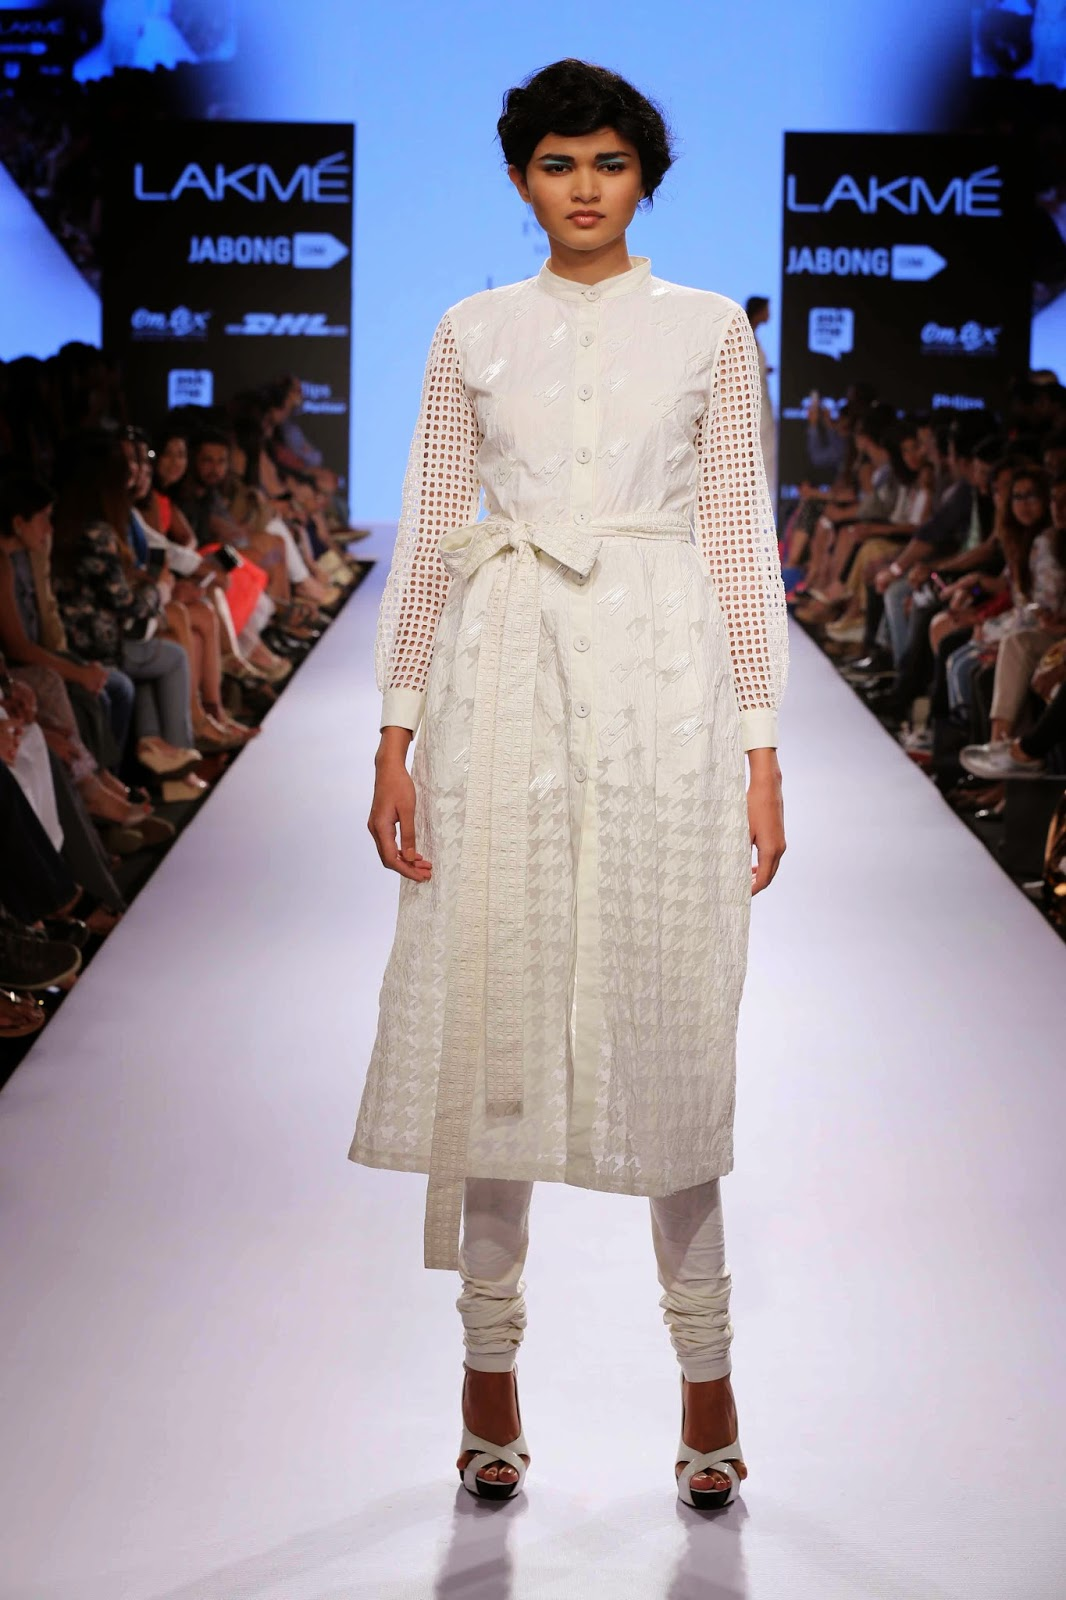 http://aquaintperspective.blogspot.in/, LIFW Day 2 Anand Bhushan